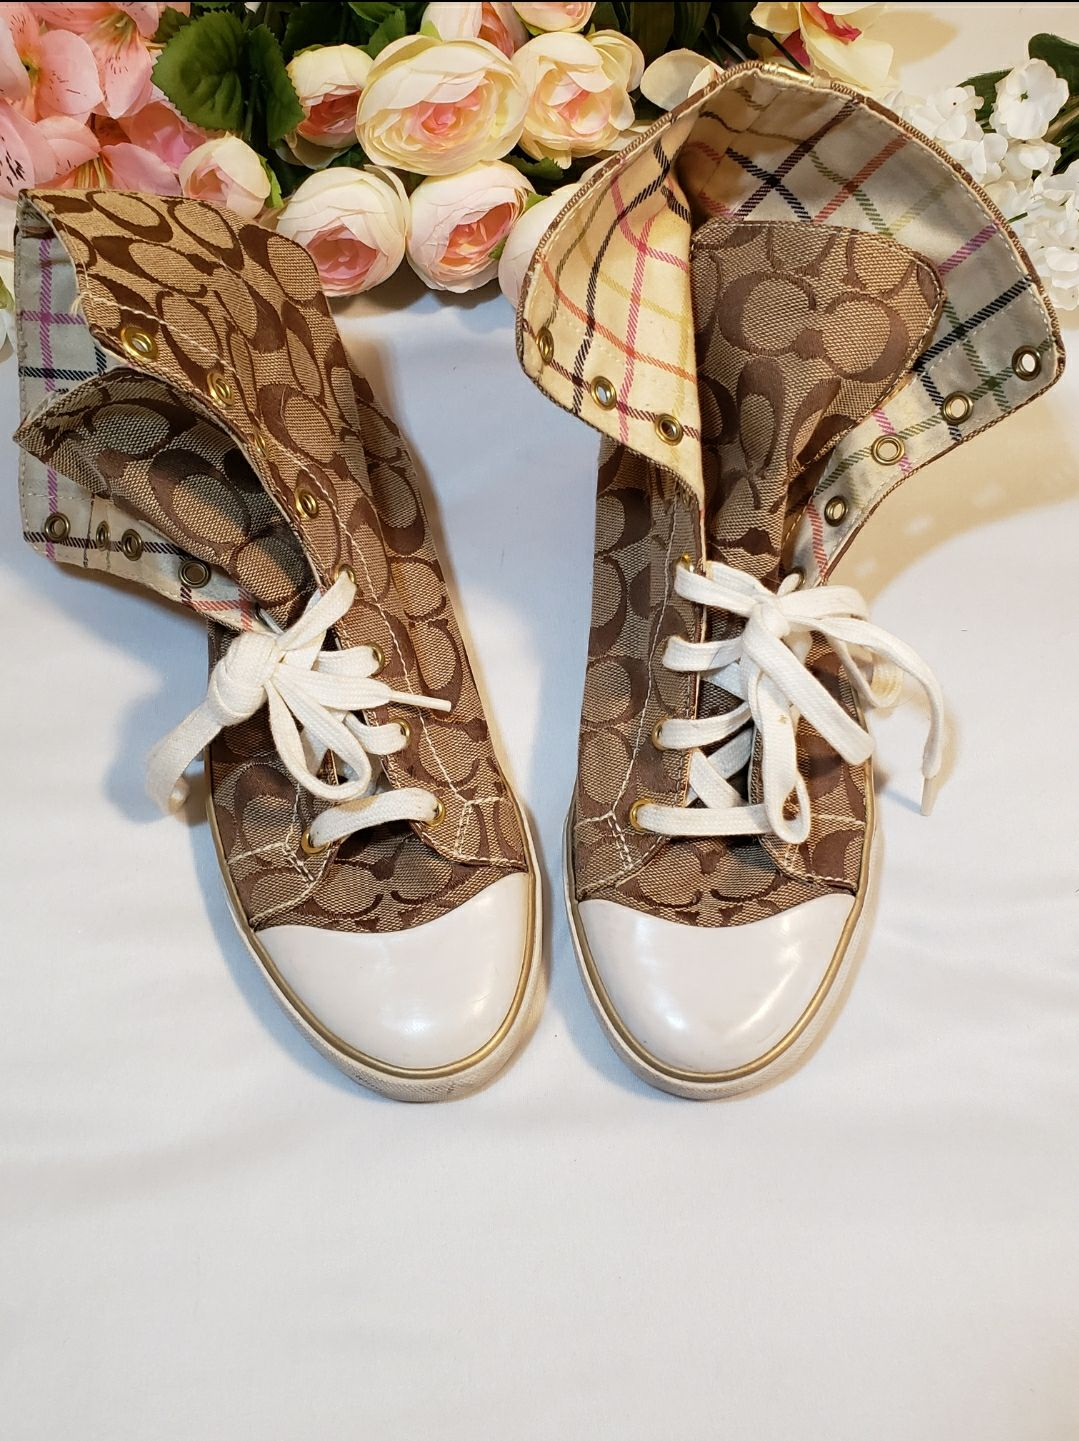 Authentic Coach high top sneakers